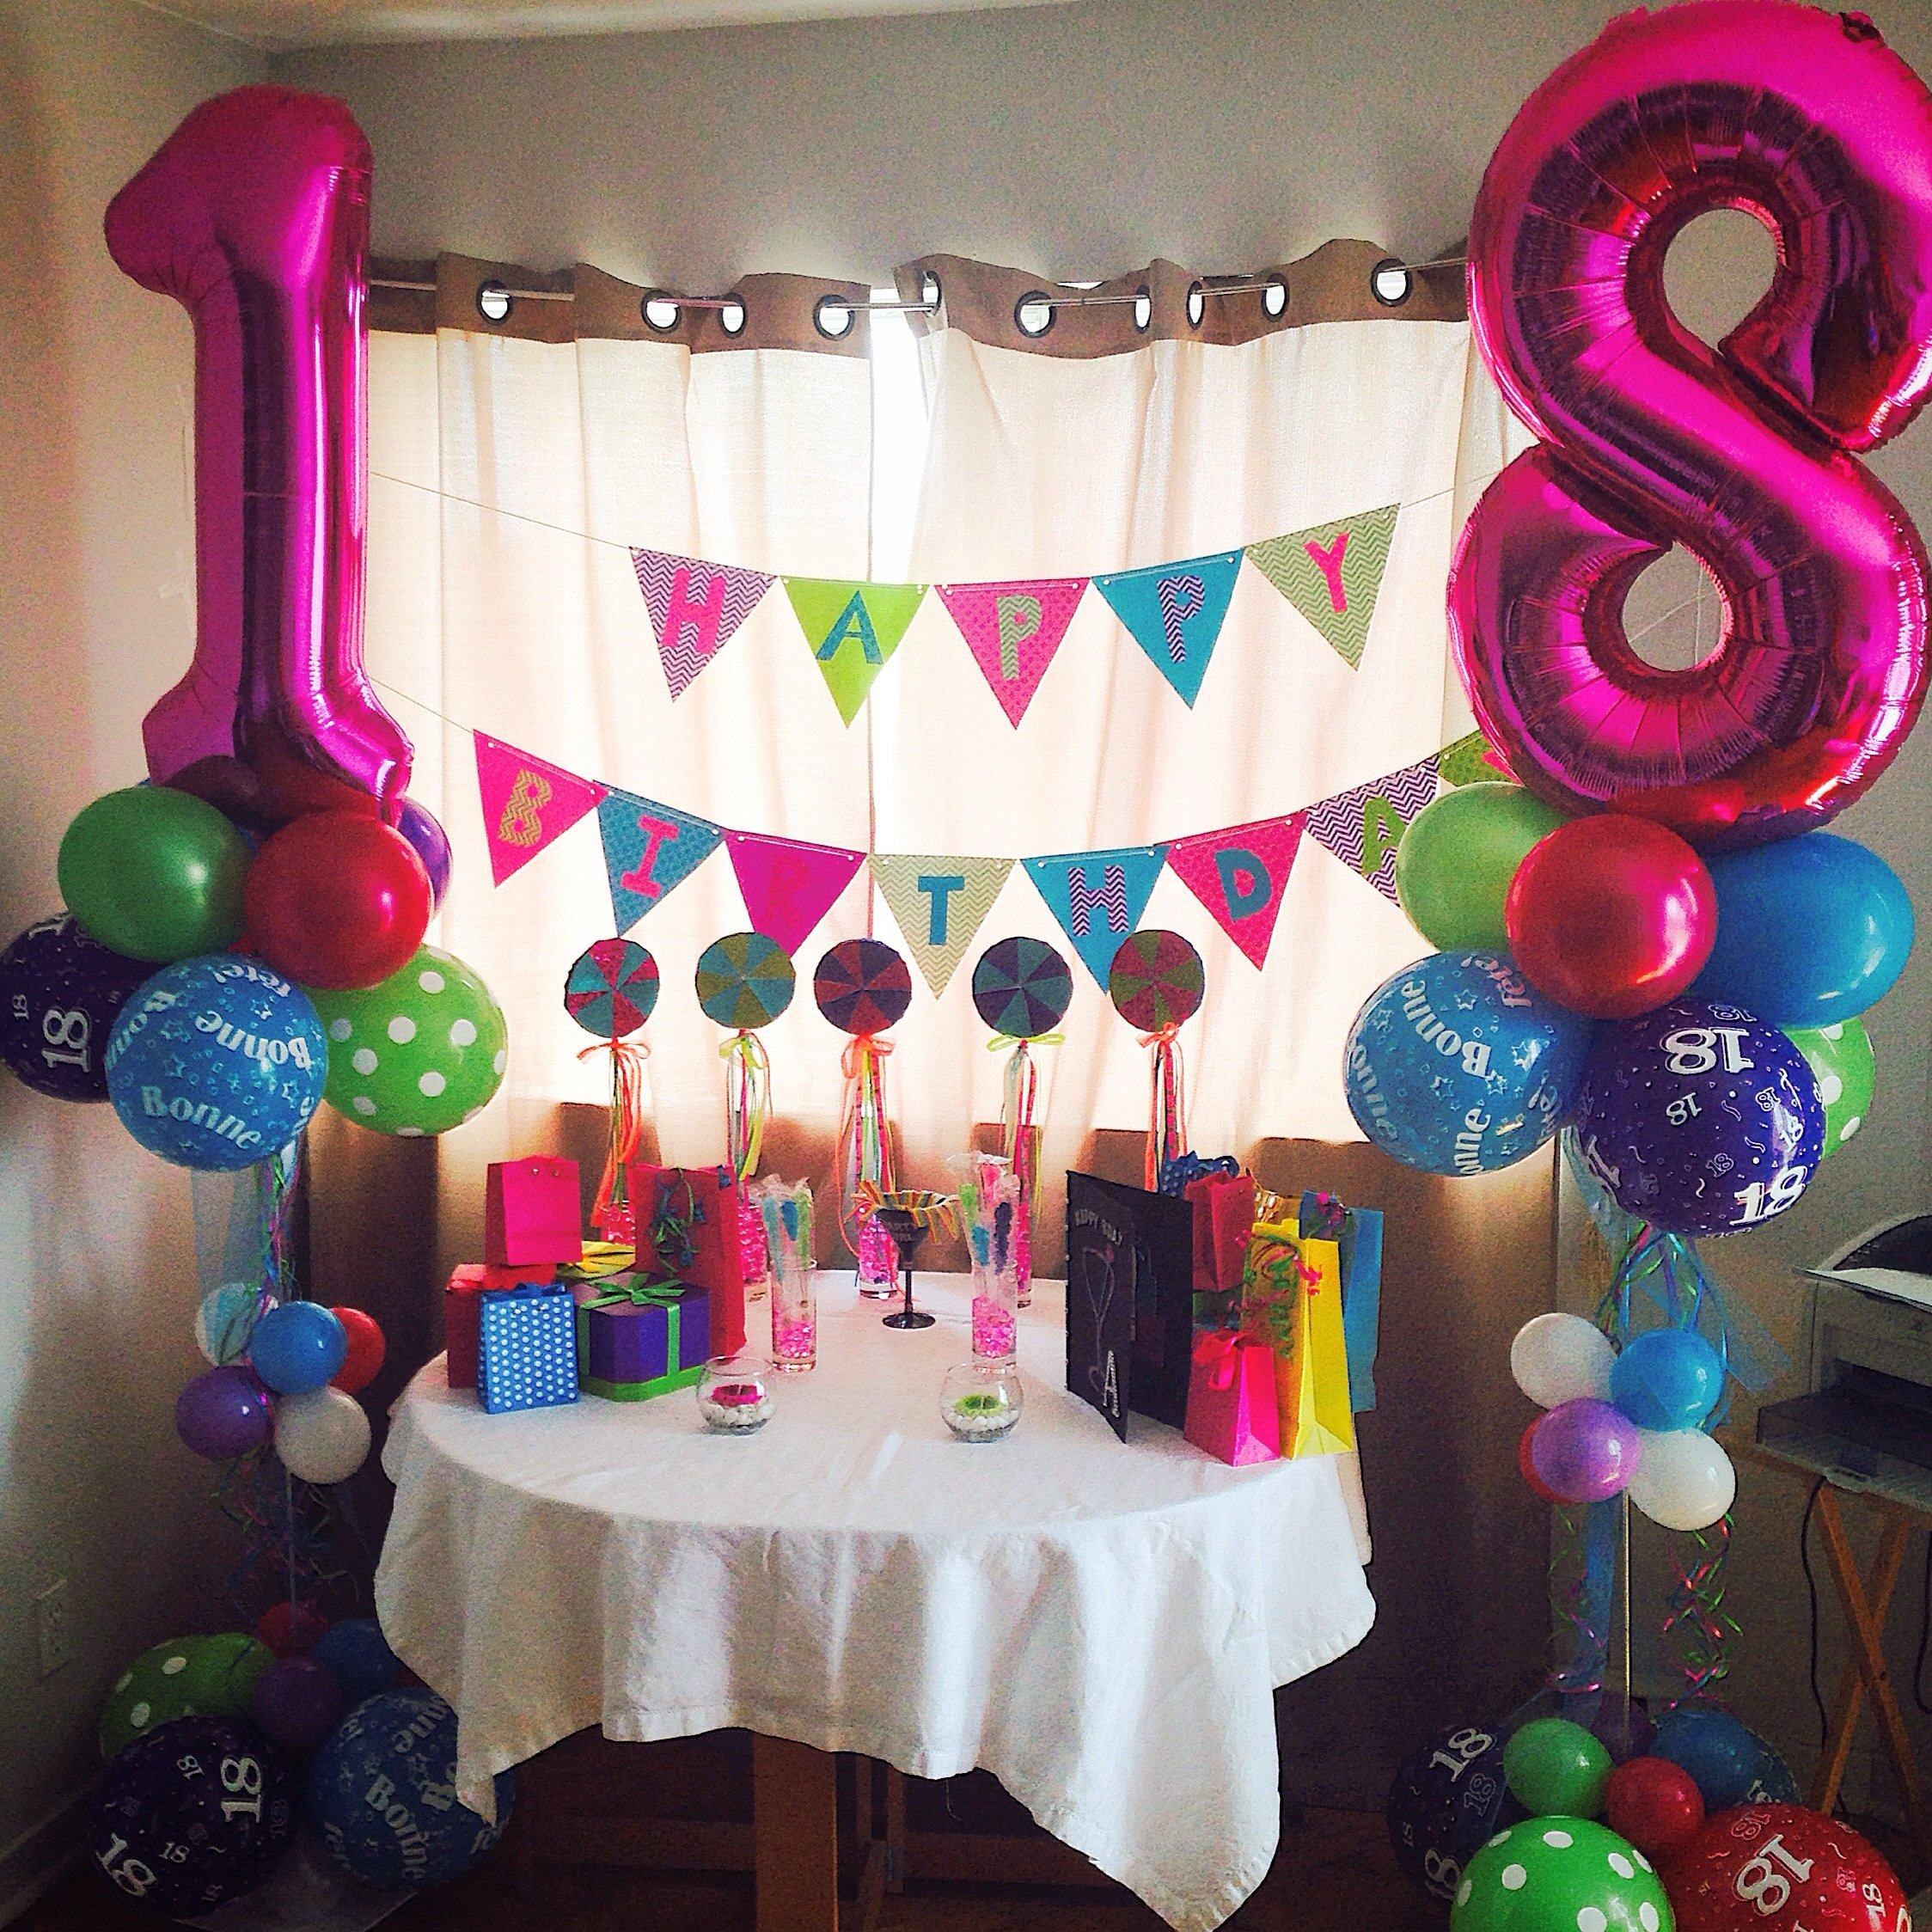 10 Great Crazy 18Th Birthday Party Ideas pinzerina cizmic on birthday gifts pinterest balloon shop